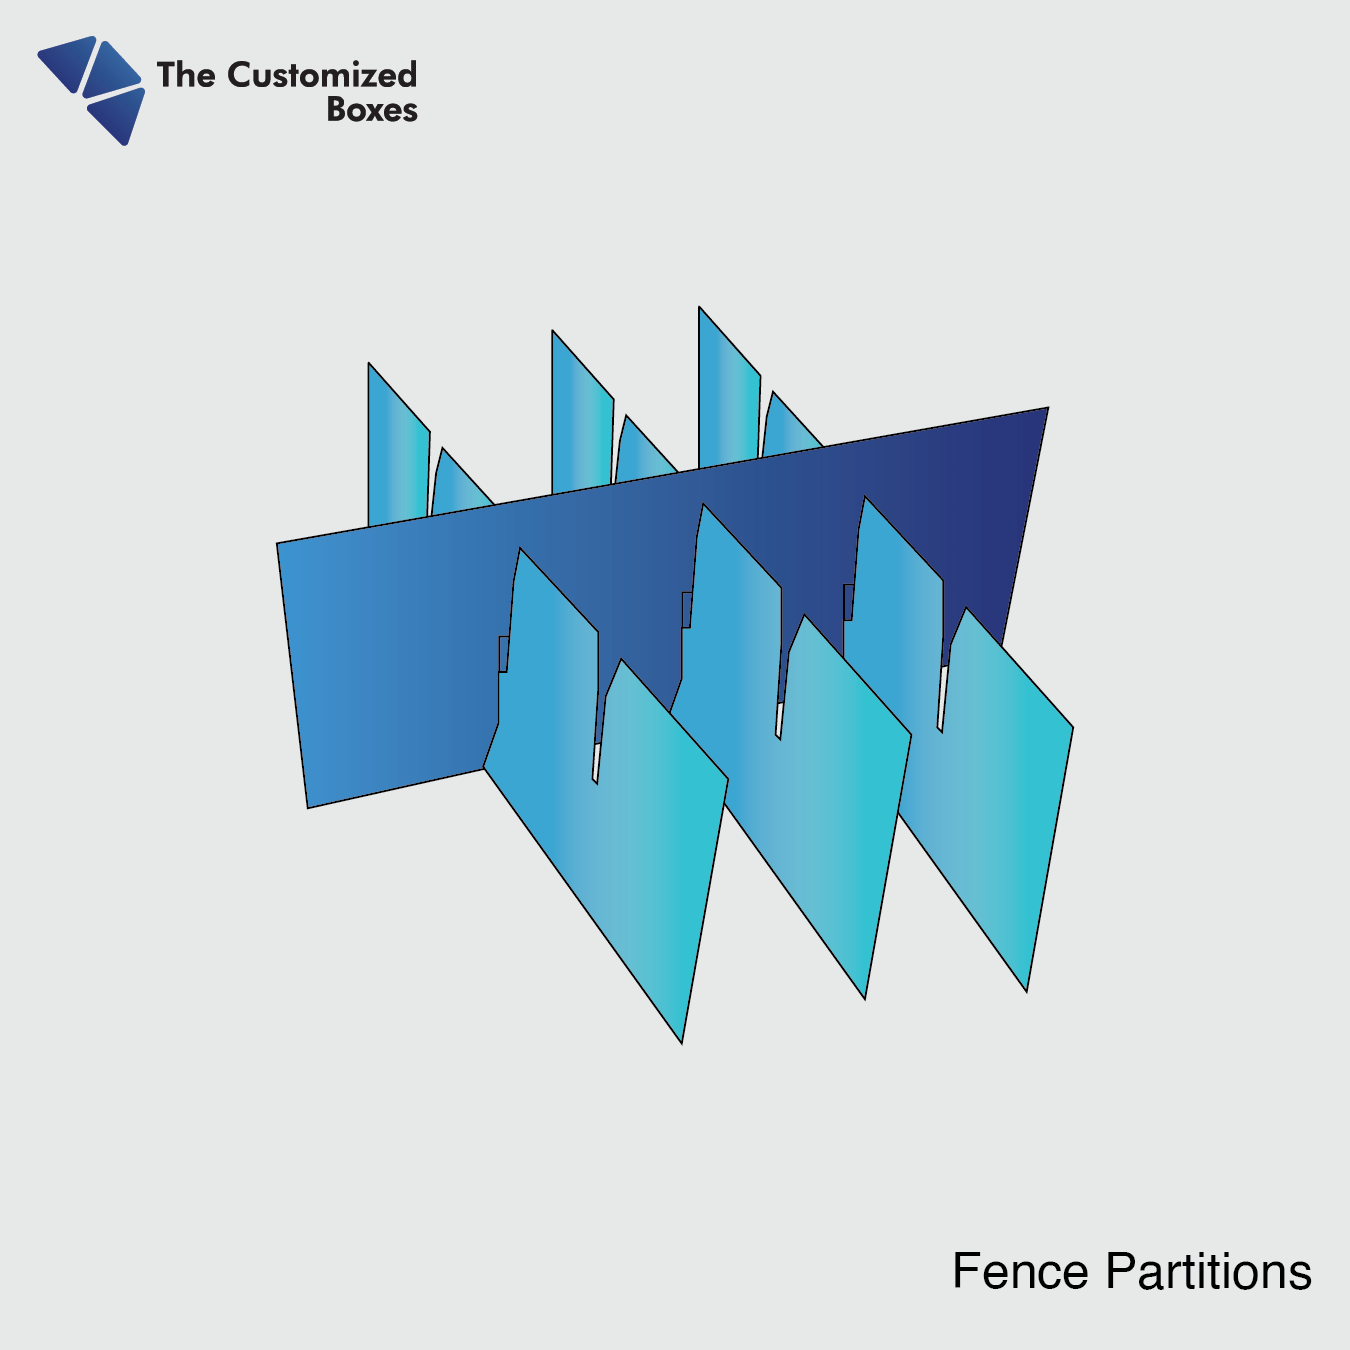 Fence Partitions (1)